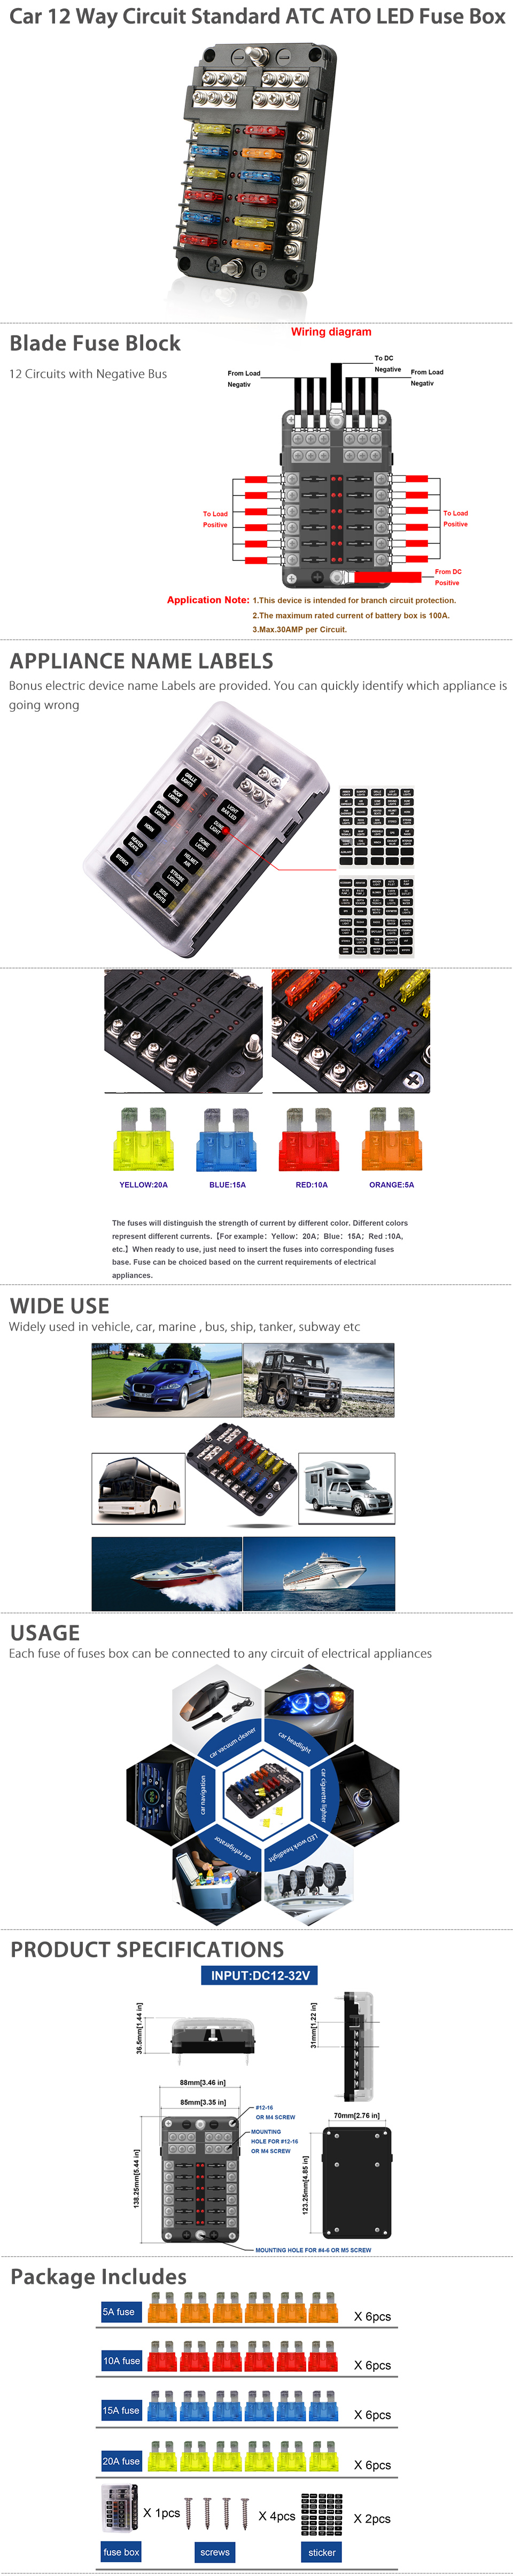 Universal Auto Car 12 Way Blade Fuse Standard Circuit Holder Box 30 Amp Screw In Current Rating Per Max 100 Volt 32v Dc Dimension 55 X 34 16140 85